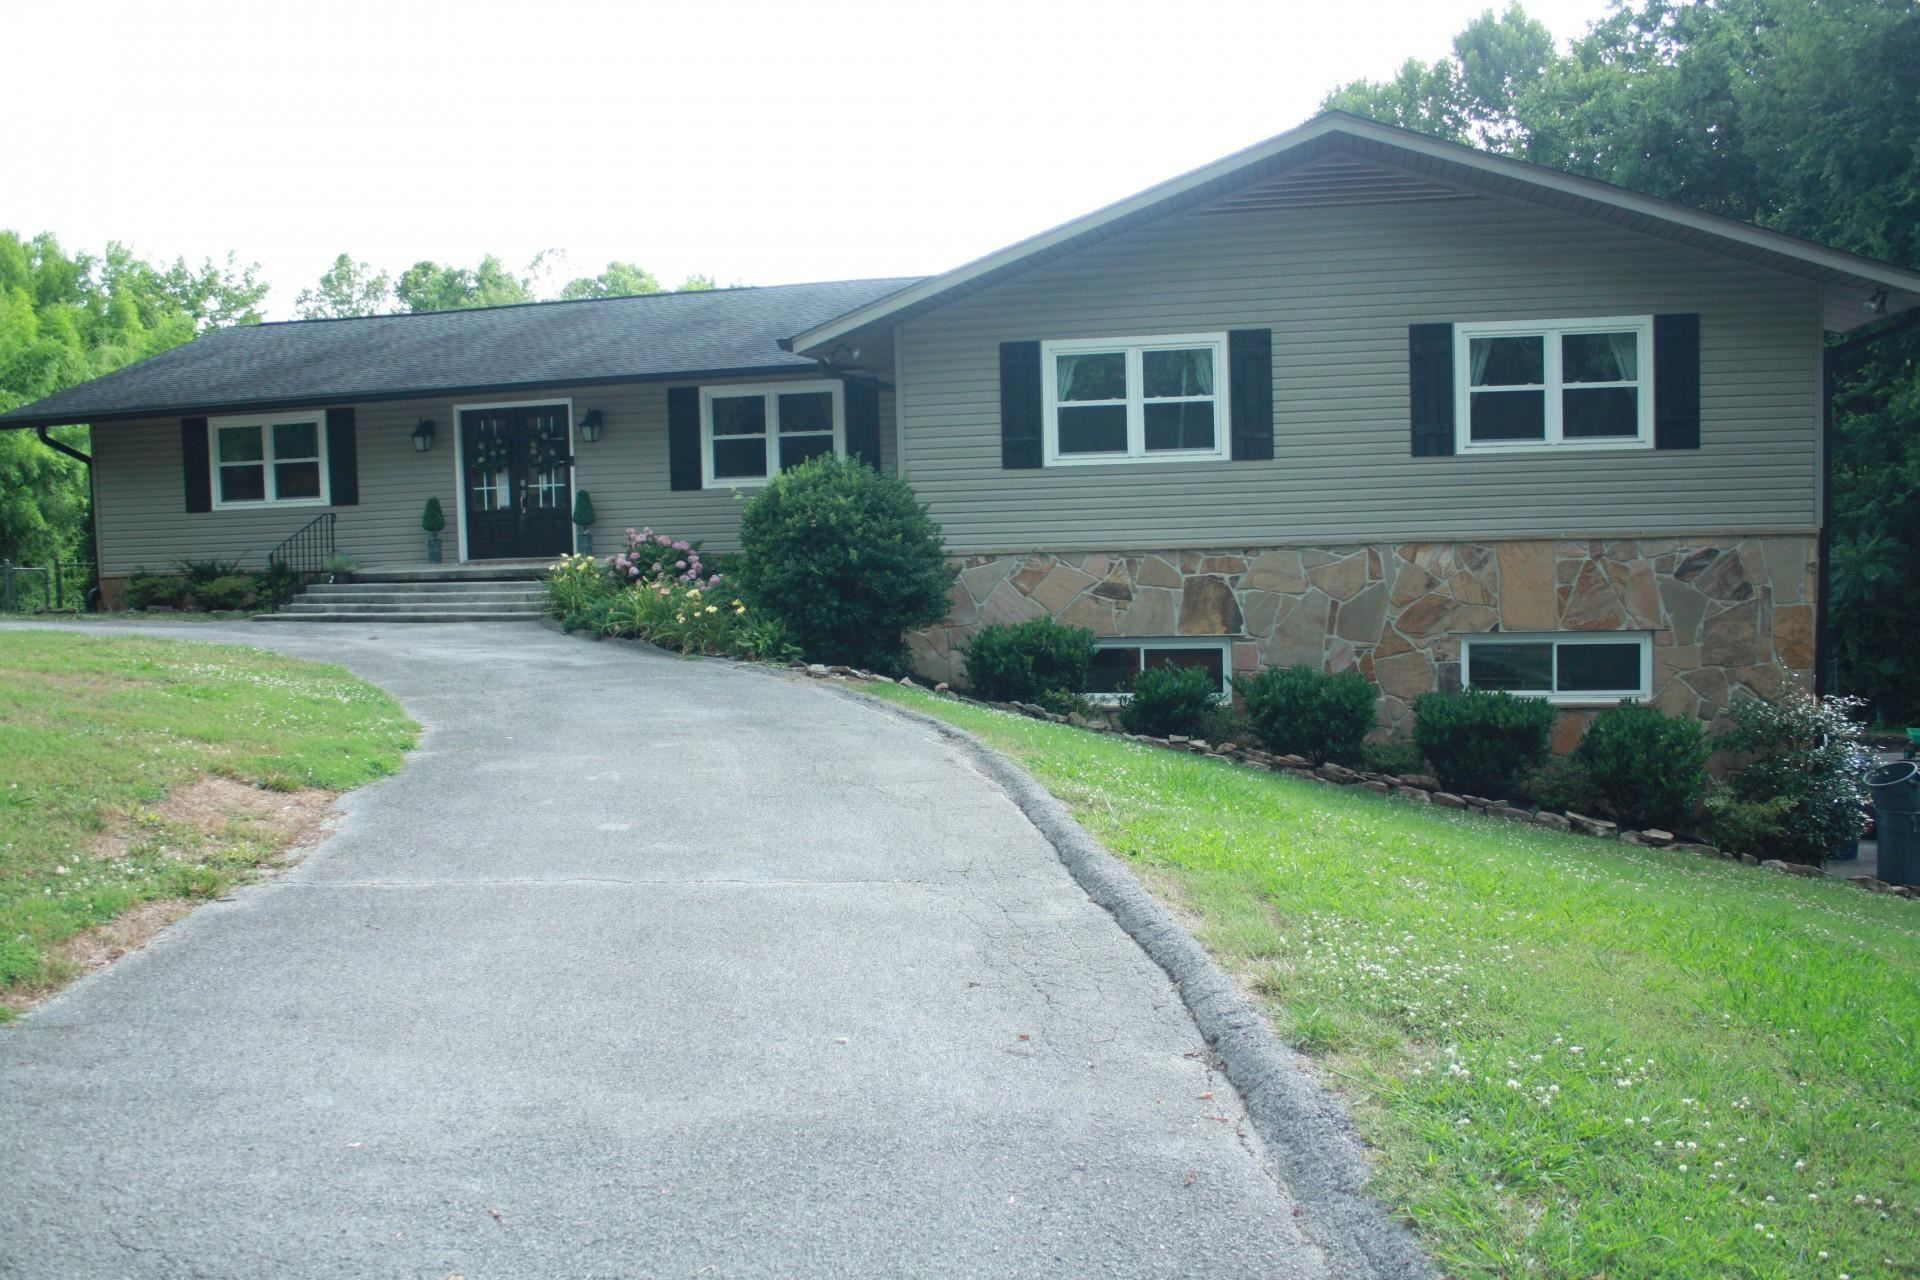 Photo of 5520 Brown Atkin Drive, Knoxville, TN 37919 (MLS # 1122064)